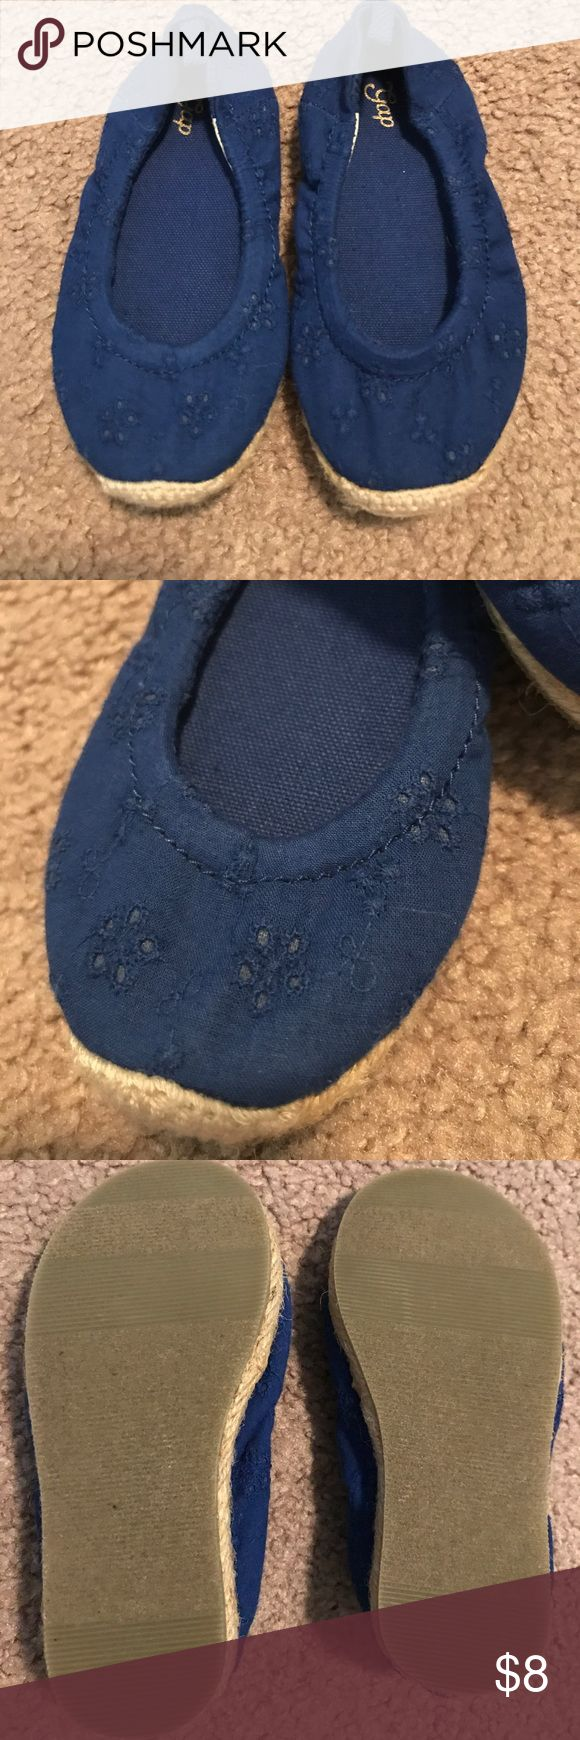 Baby Gap shoes Blue toddler shoes in good condition Baby Gap Shoes